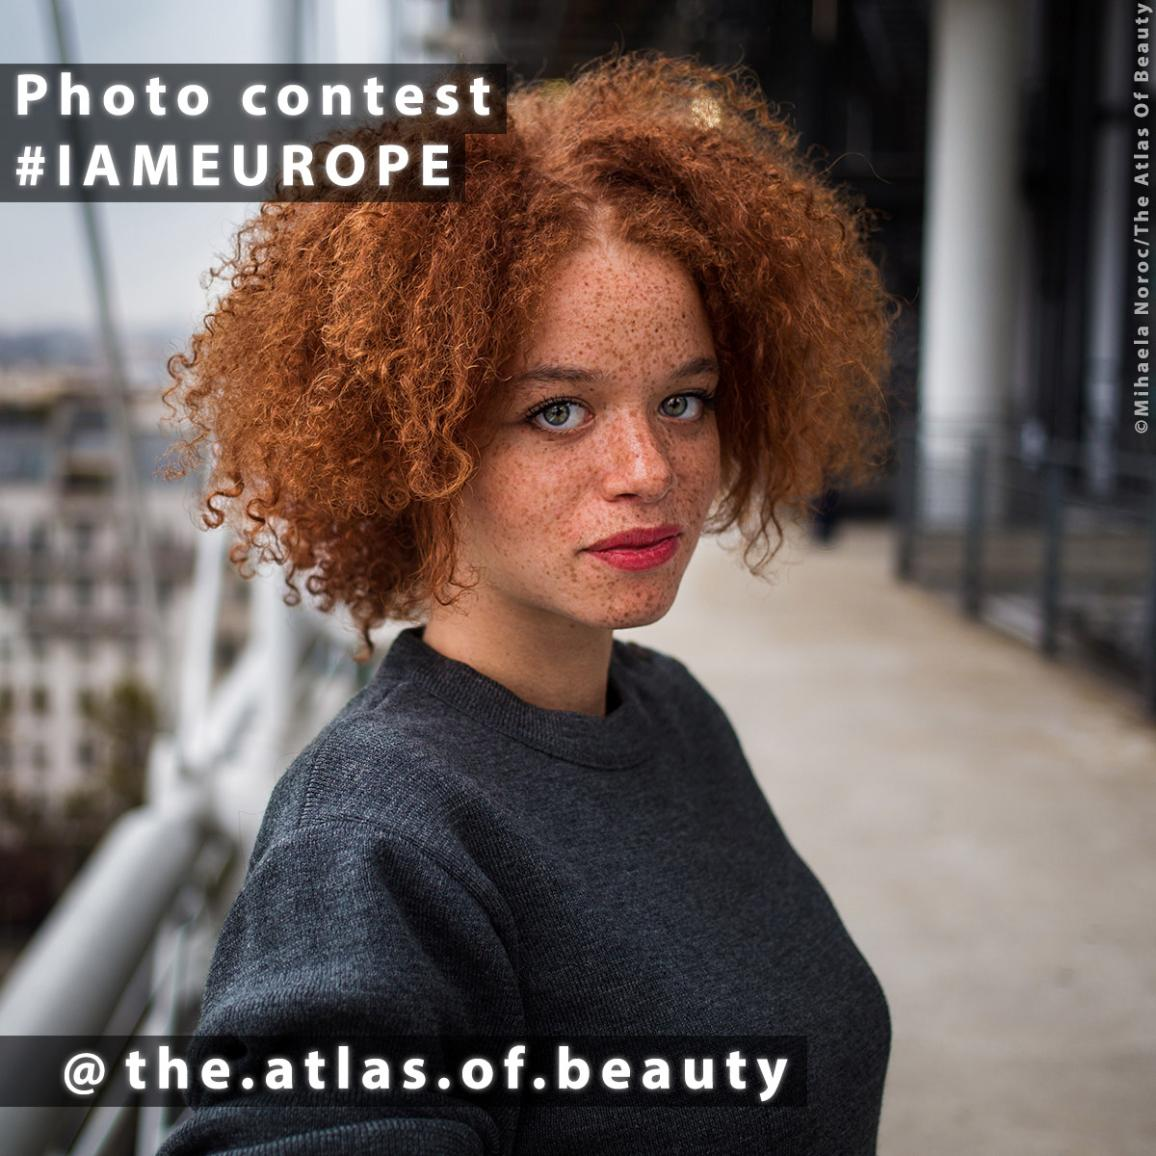 Special thanks to the Romanian photographer Mihaela Noroc (instagram @the.atlas.of.beauty) for the photo contest testimonial